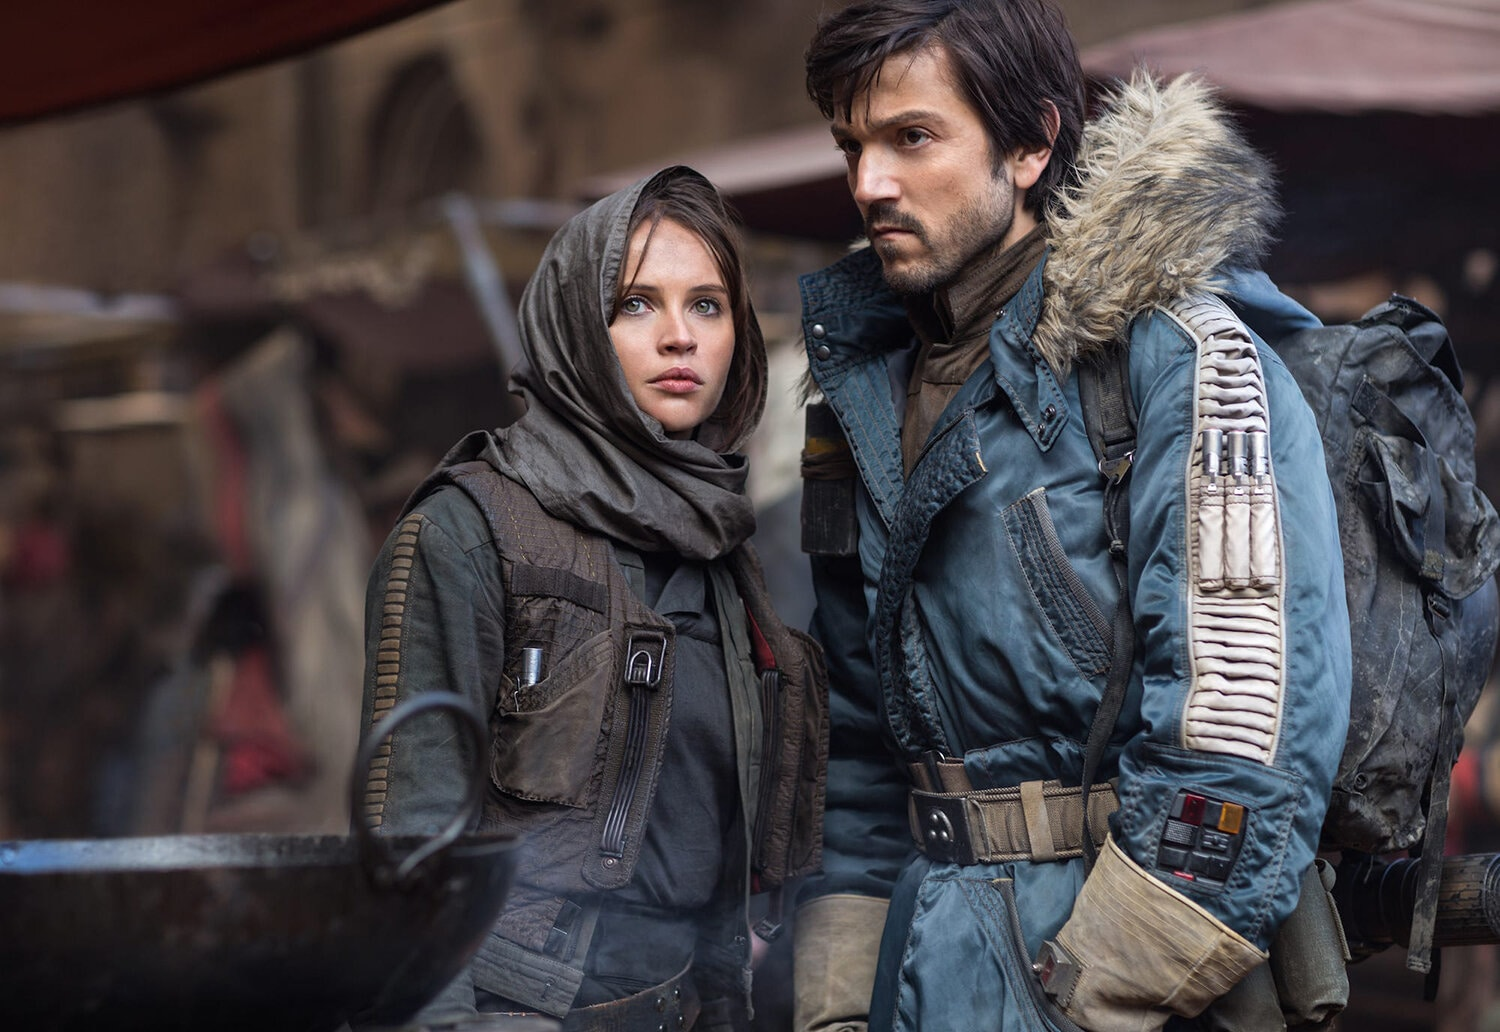 On the fourth anniversary of 'Rogue One: A Star Wars Story', fans are remembering the film's courageous characters and gorgeous shots.